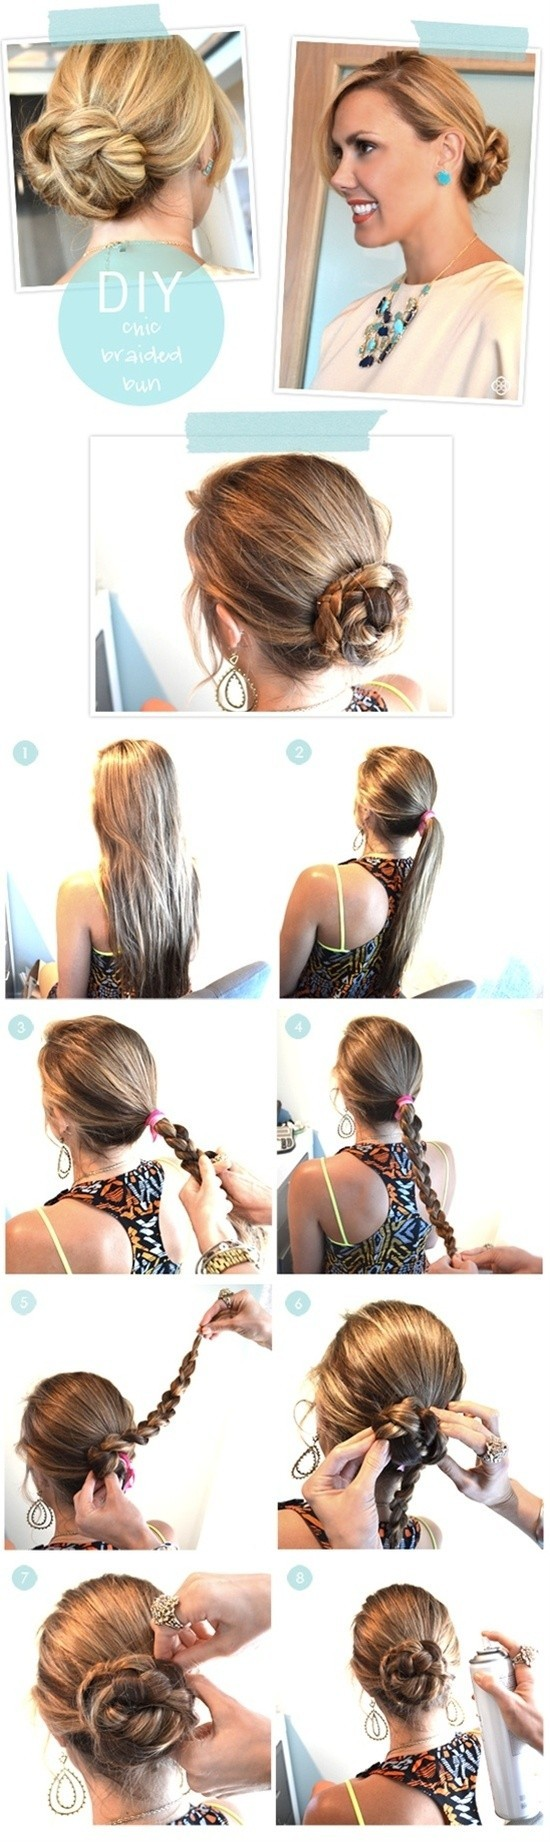 Step by step hairstyles for long hair long hairstyles ideas diy chic braided bun hair tutorial easy updos for long hair solutioingenieria